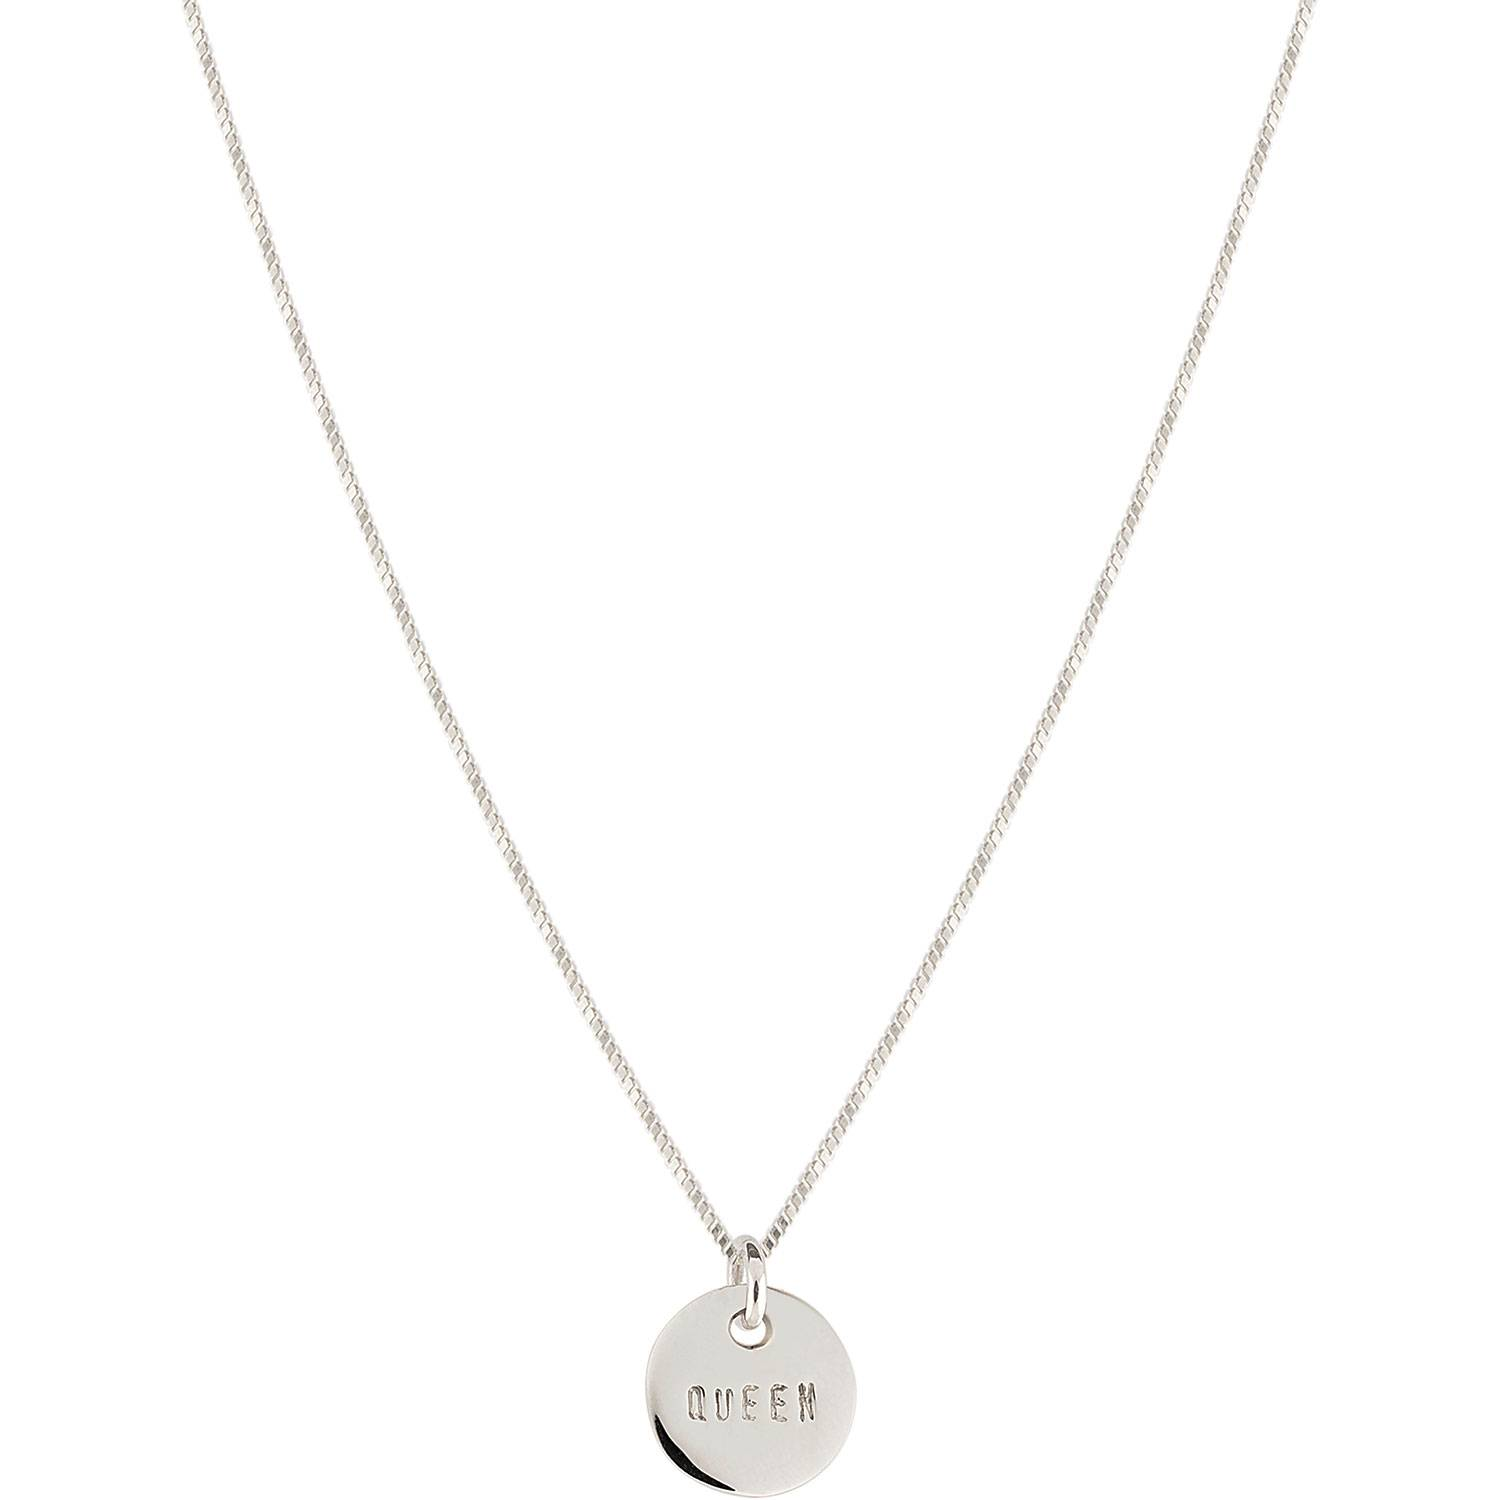 Emma Israelsson Queen Coin Necklace 40 cm, Silver